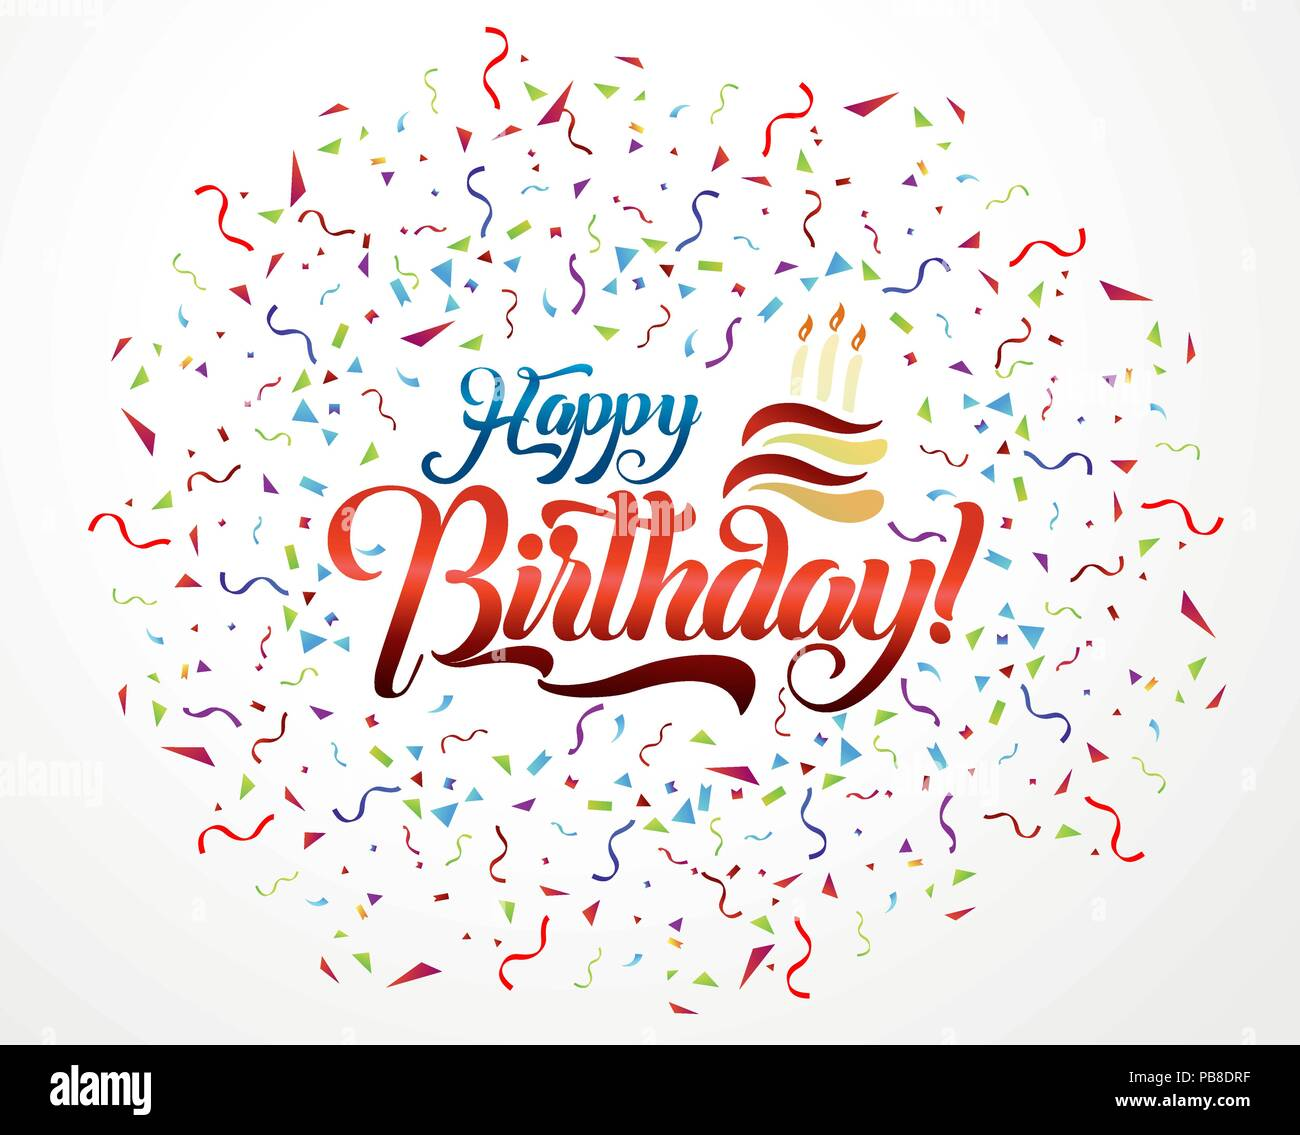 Happy birthday lettering text vector illustration birthday greeting happy birthday lettering text vector illustration birthday greeting card design m4hsunfo